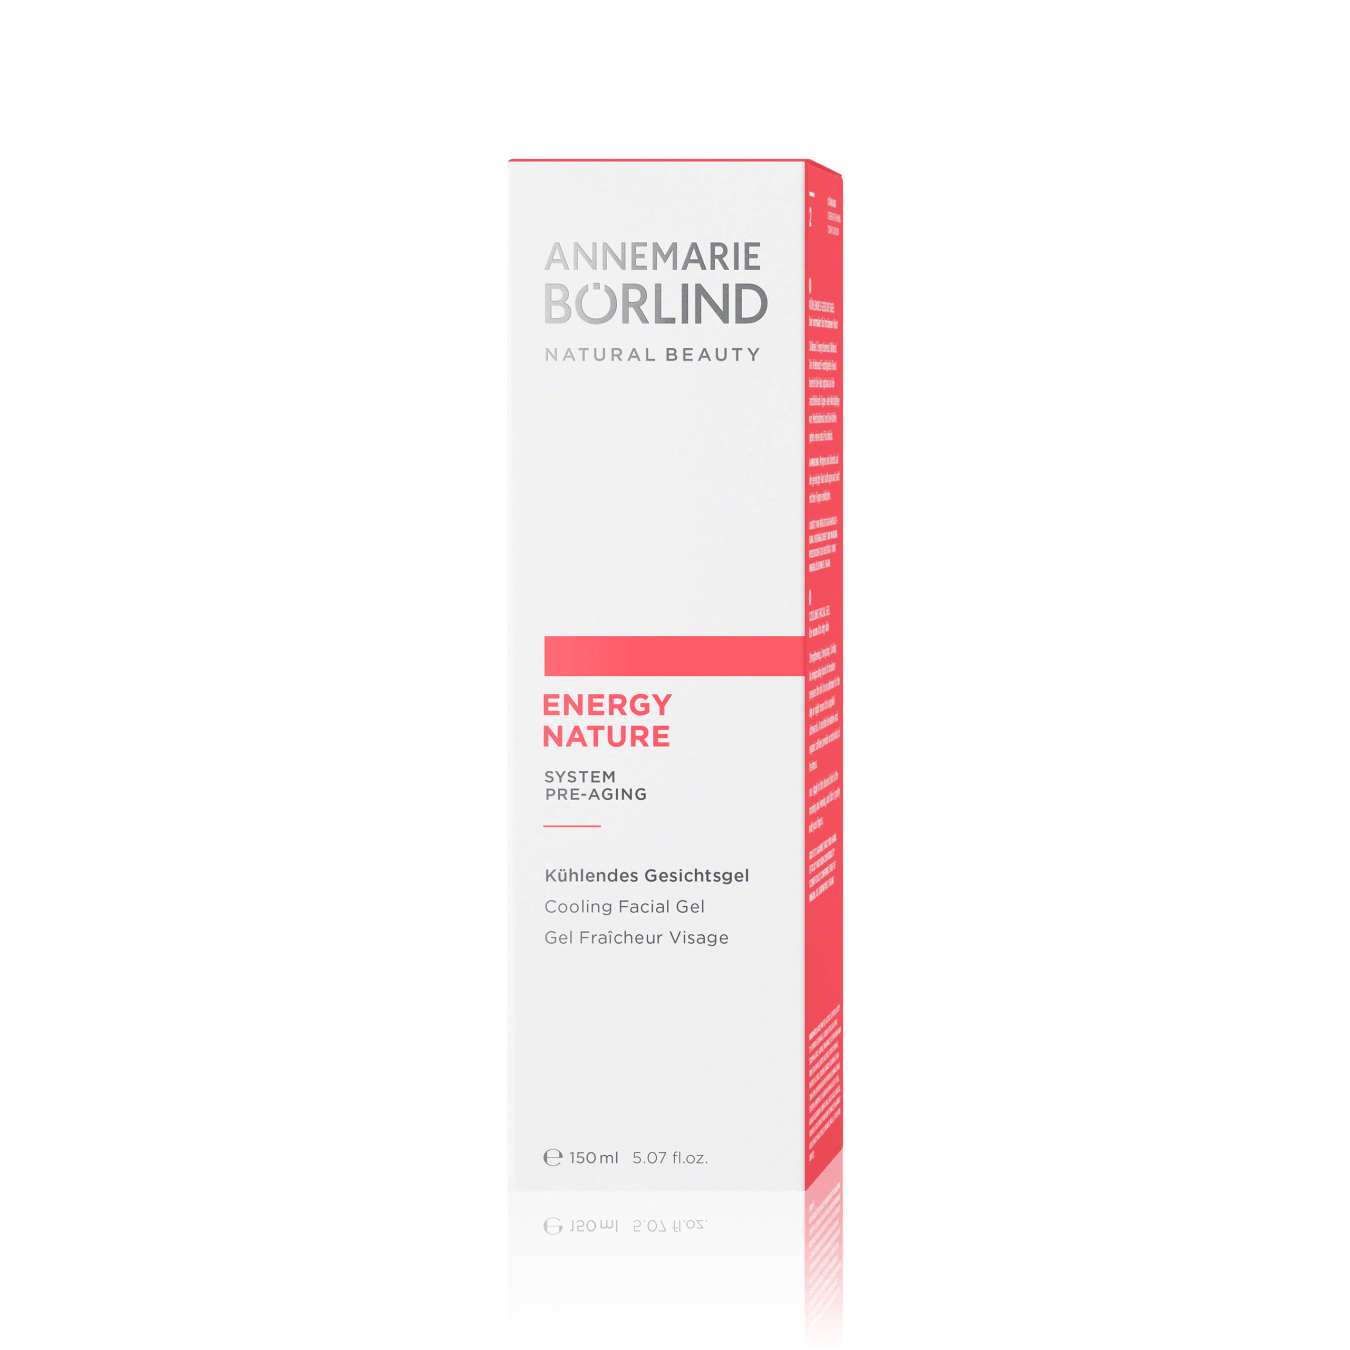 ANNEMARIE BÖRLIND ENERGYNATURE SYSTEM PRE-AGING Cooling Facial Gel 150 ml - iwellnessbox